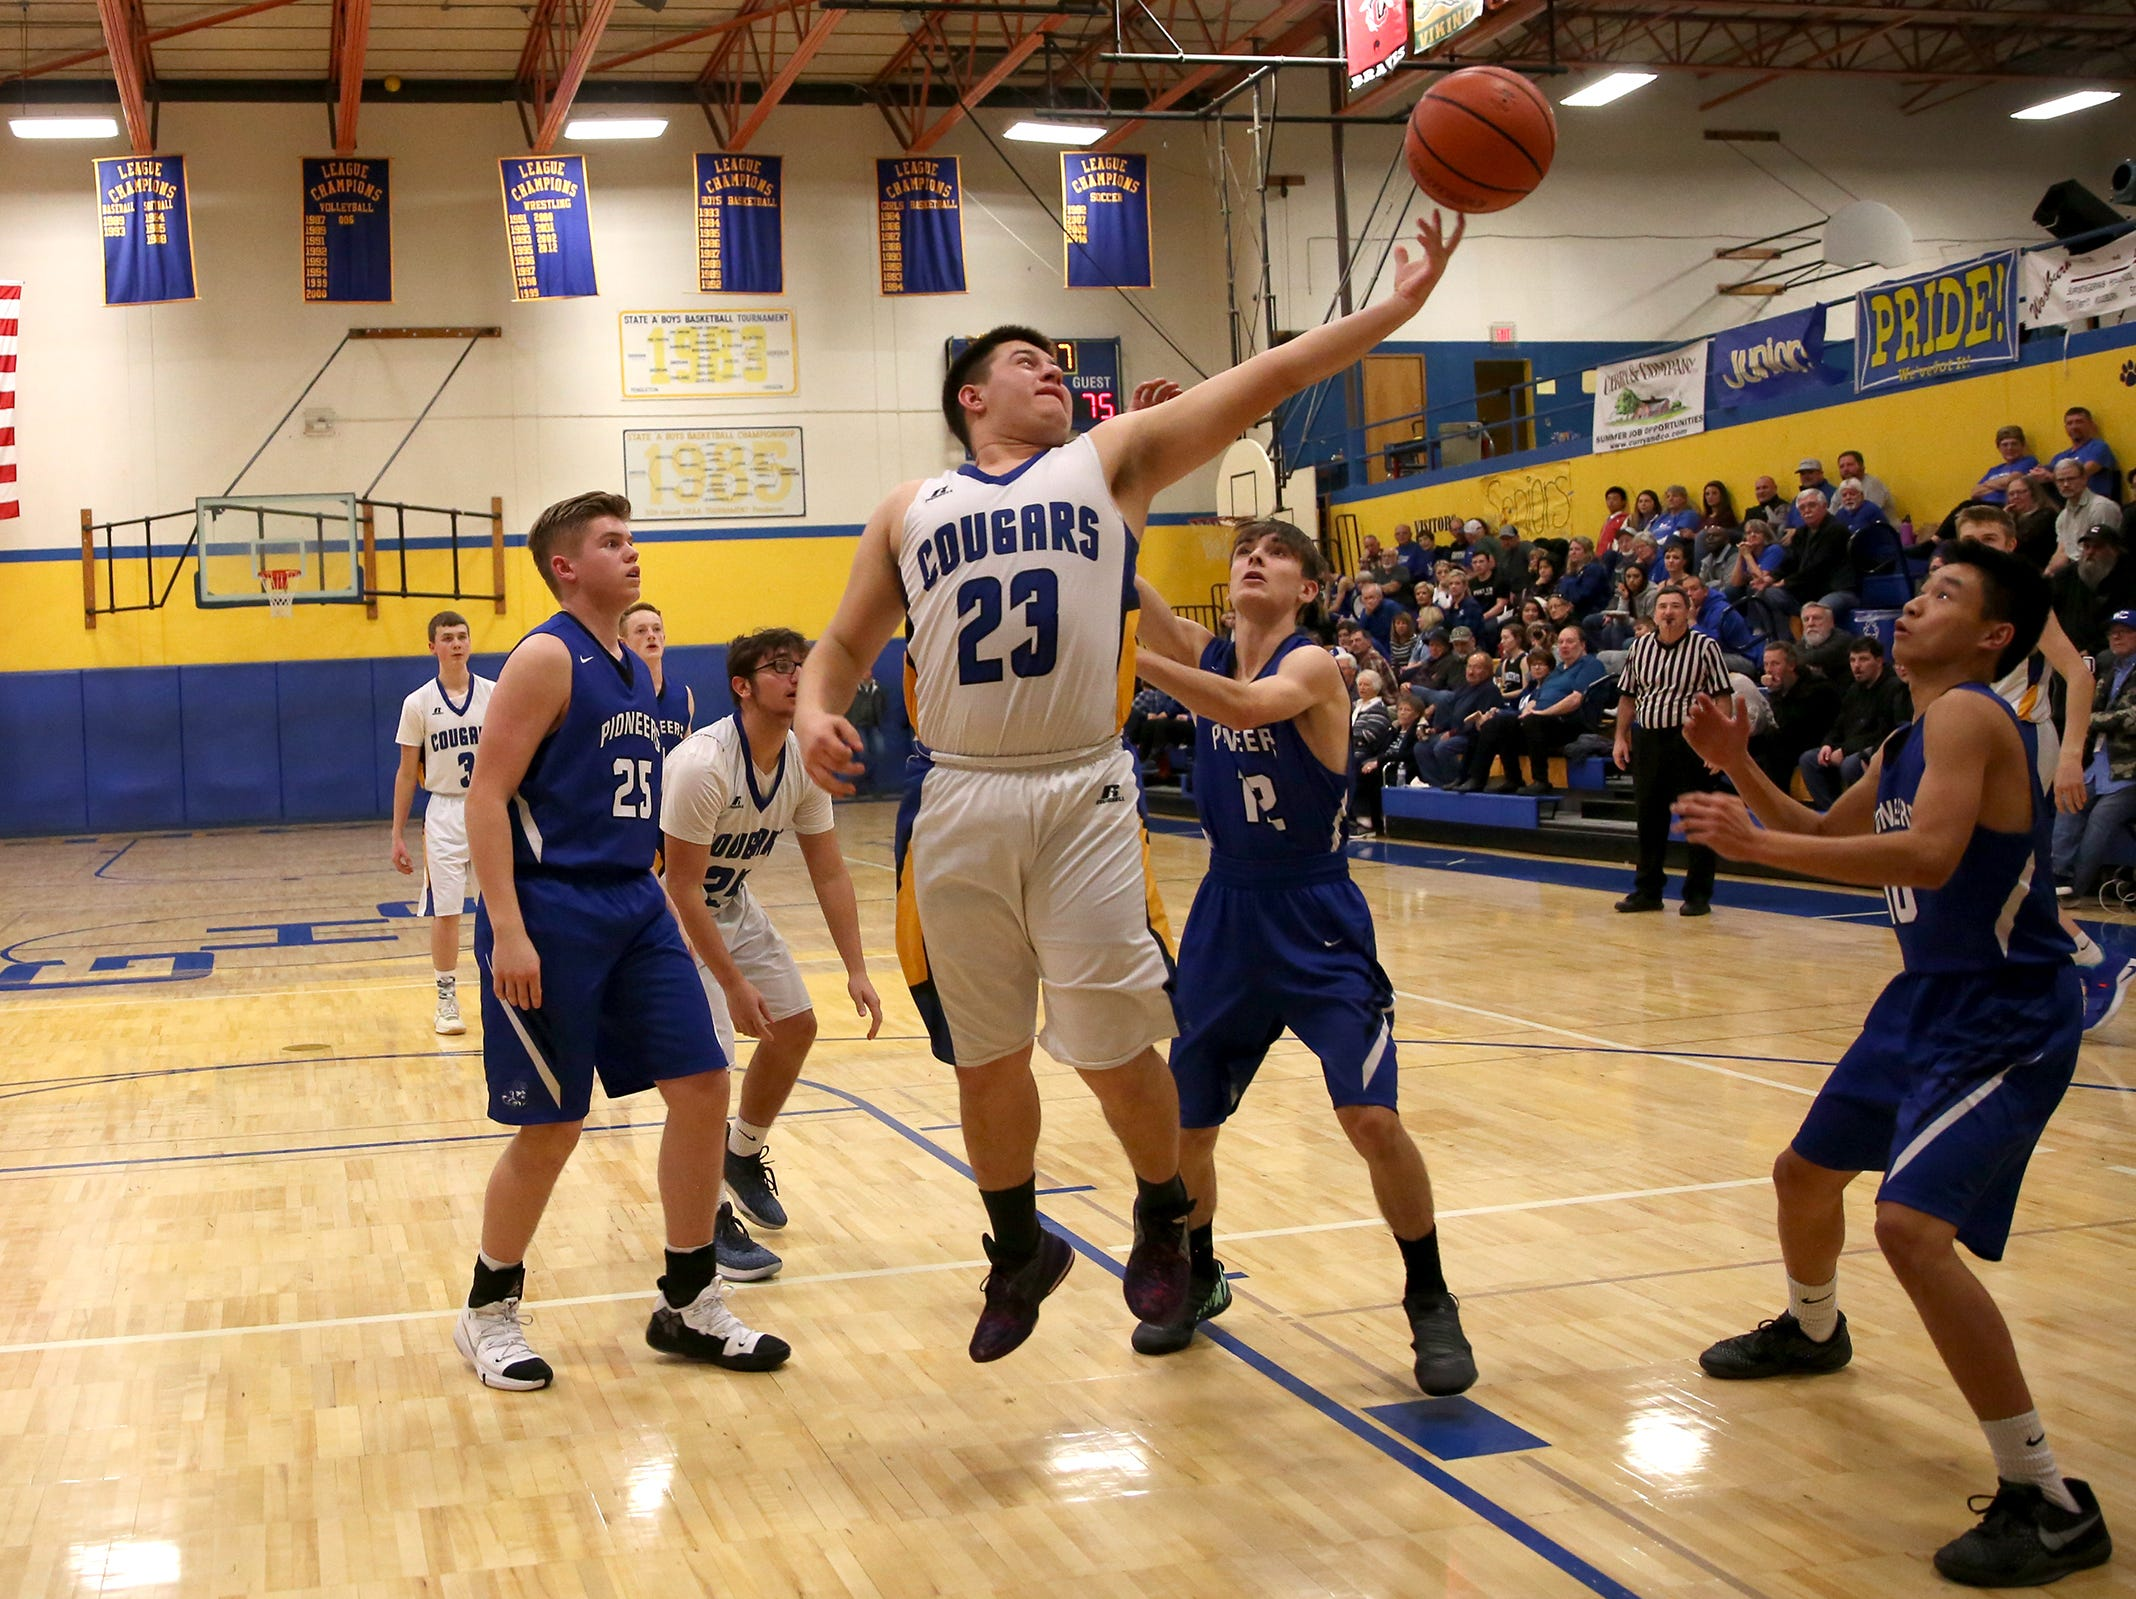 Gervais' Alejandro Contreras (23) rebounds the ball during the Gervais High School boys basketball game against Western Christian in Gervais on Friday, Feb. 1, 2019.